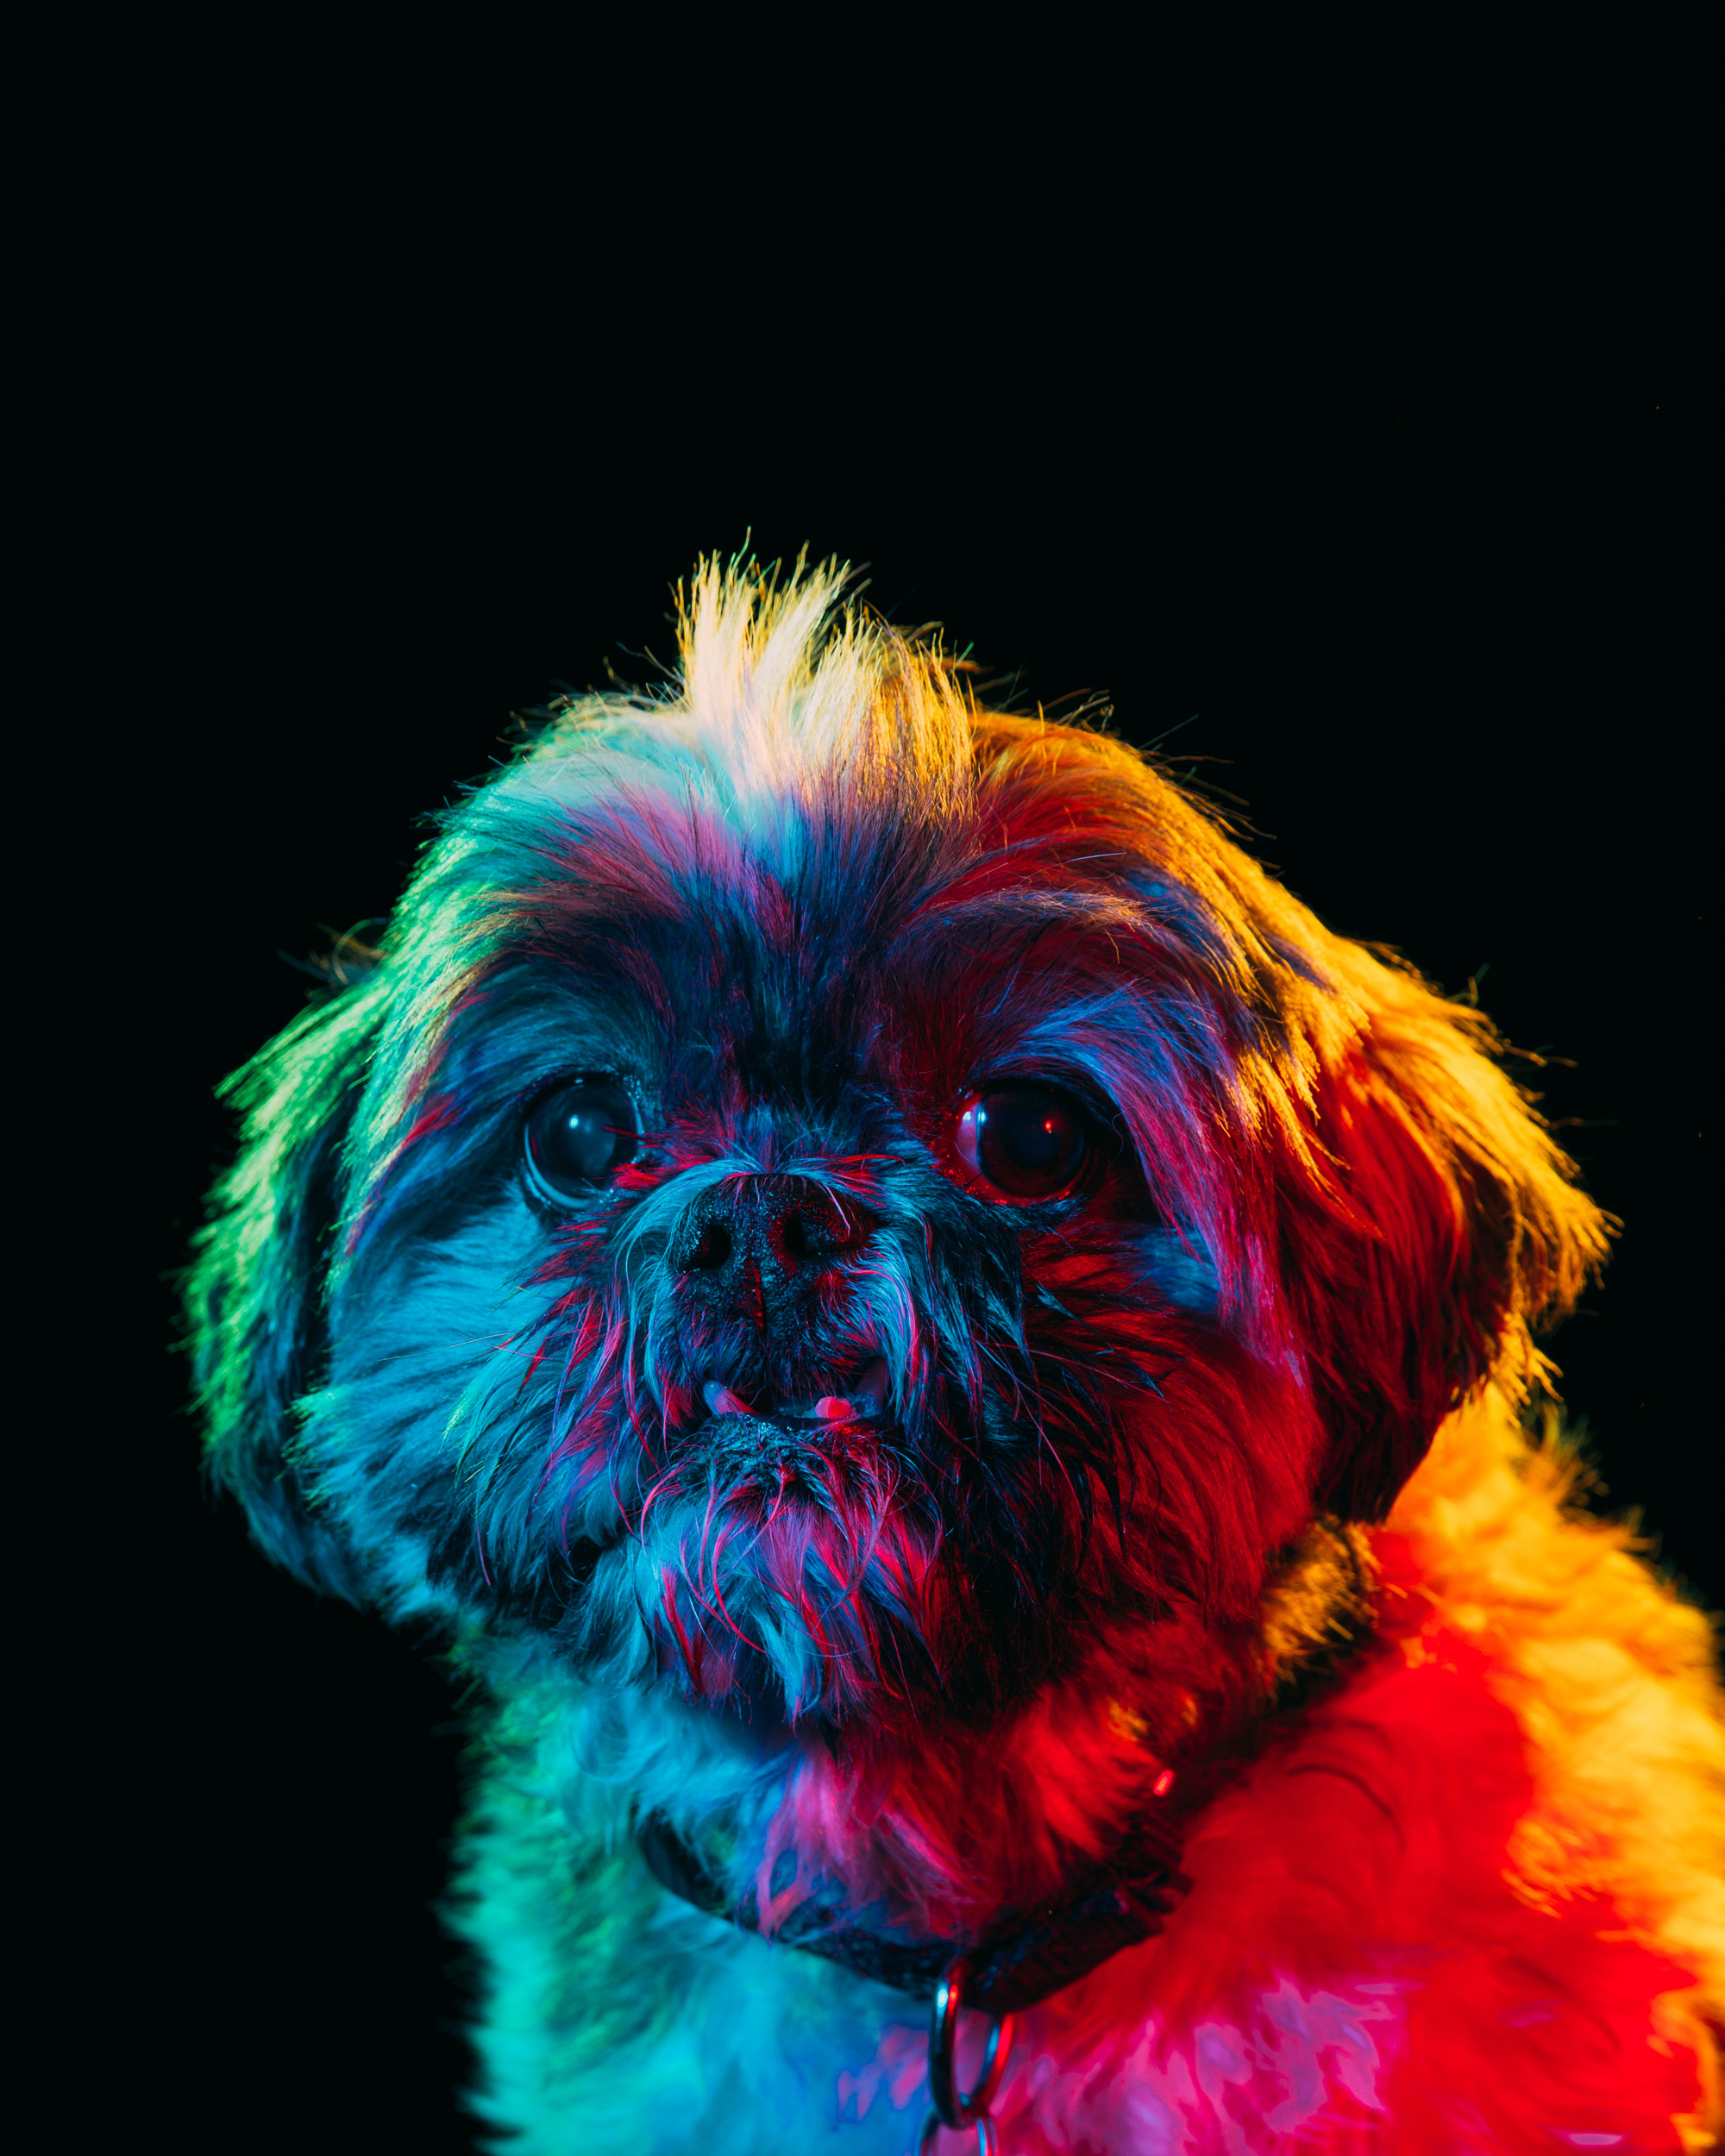 Colorful Portraits of Adoptable Dogs Photographed by Paul Octavious